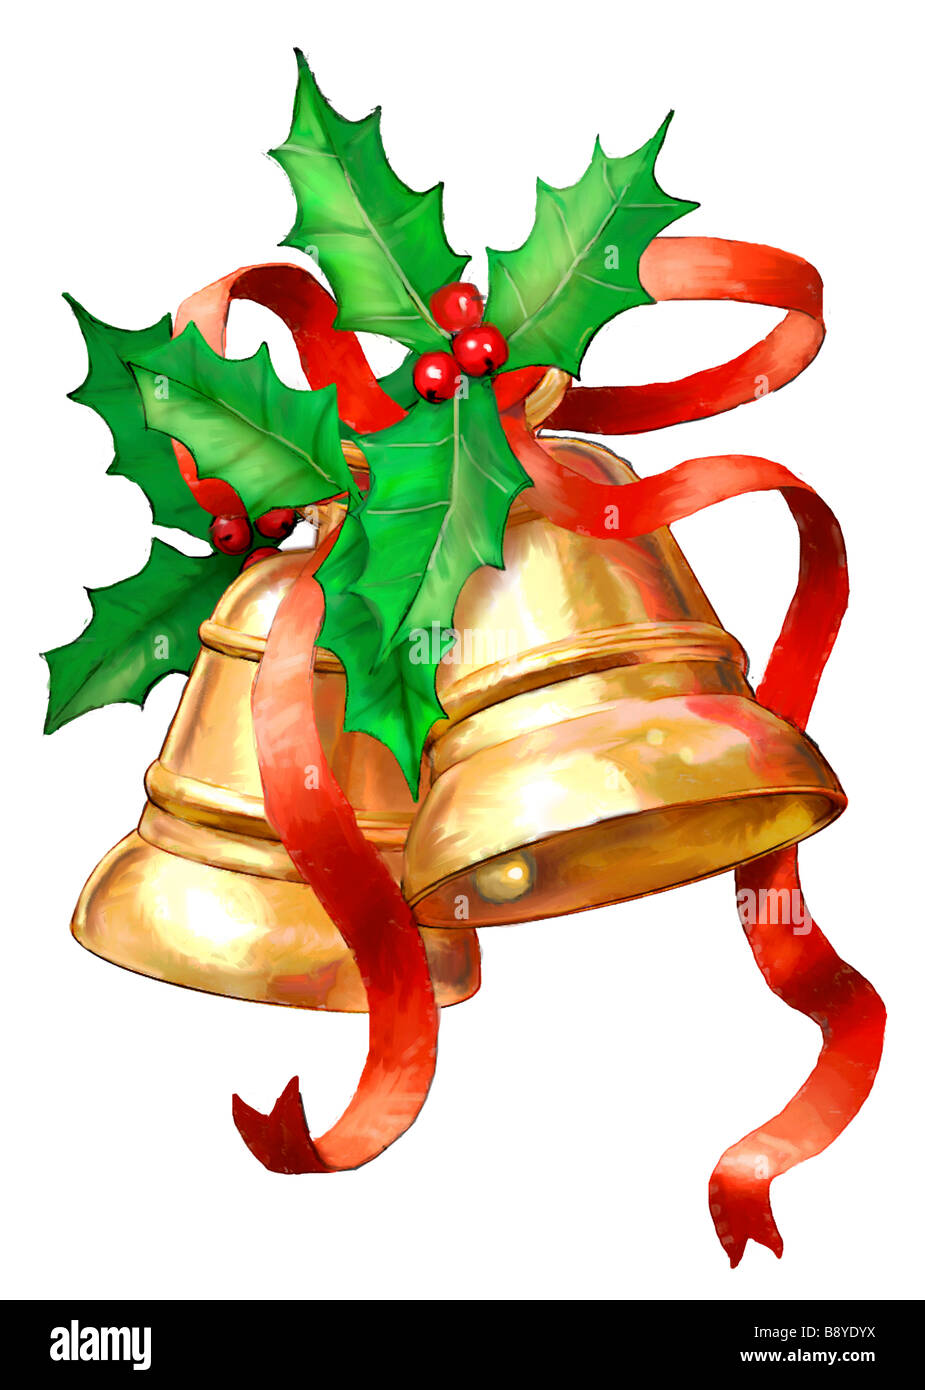 Christmas Bells Images.Christmas Bells With Holly Stock Photo 22731294 Alamy